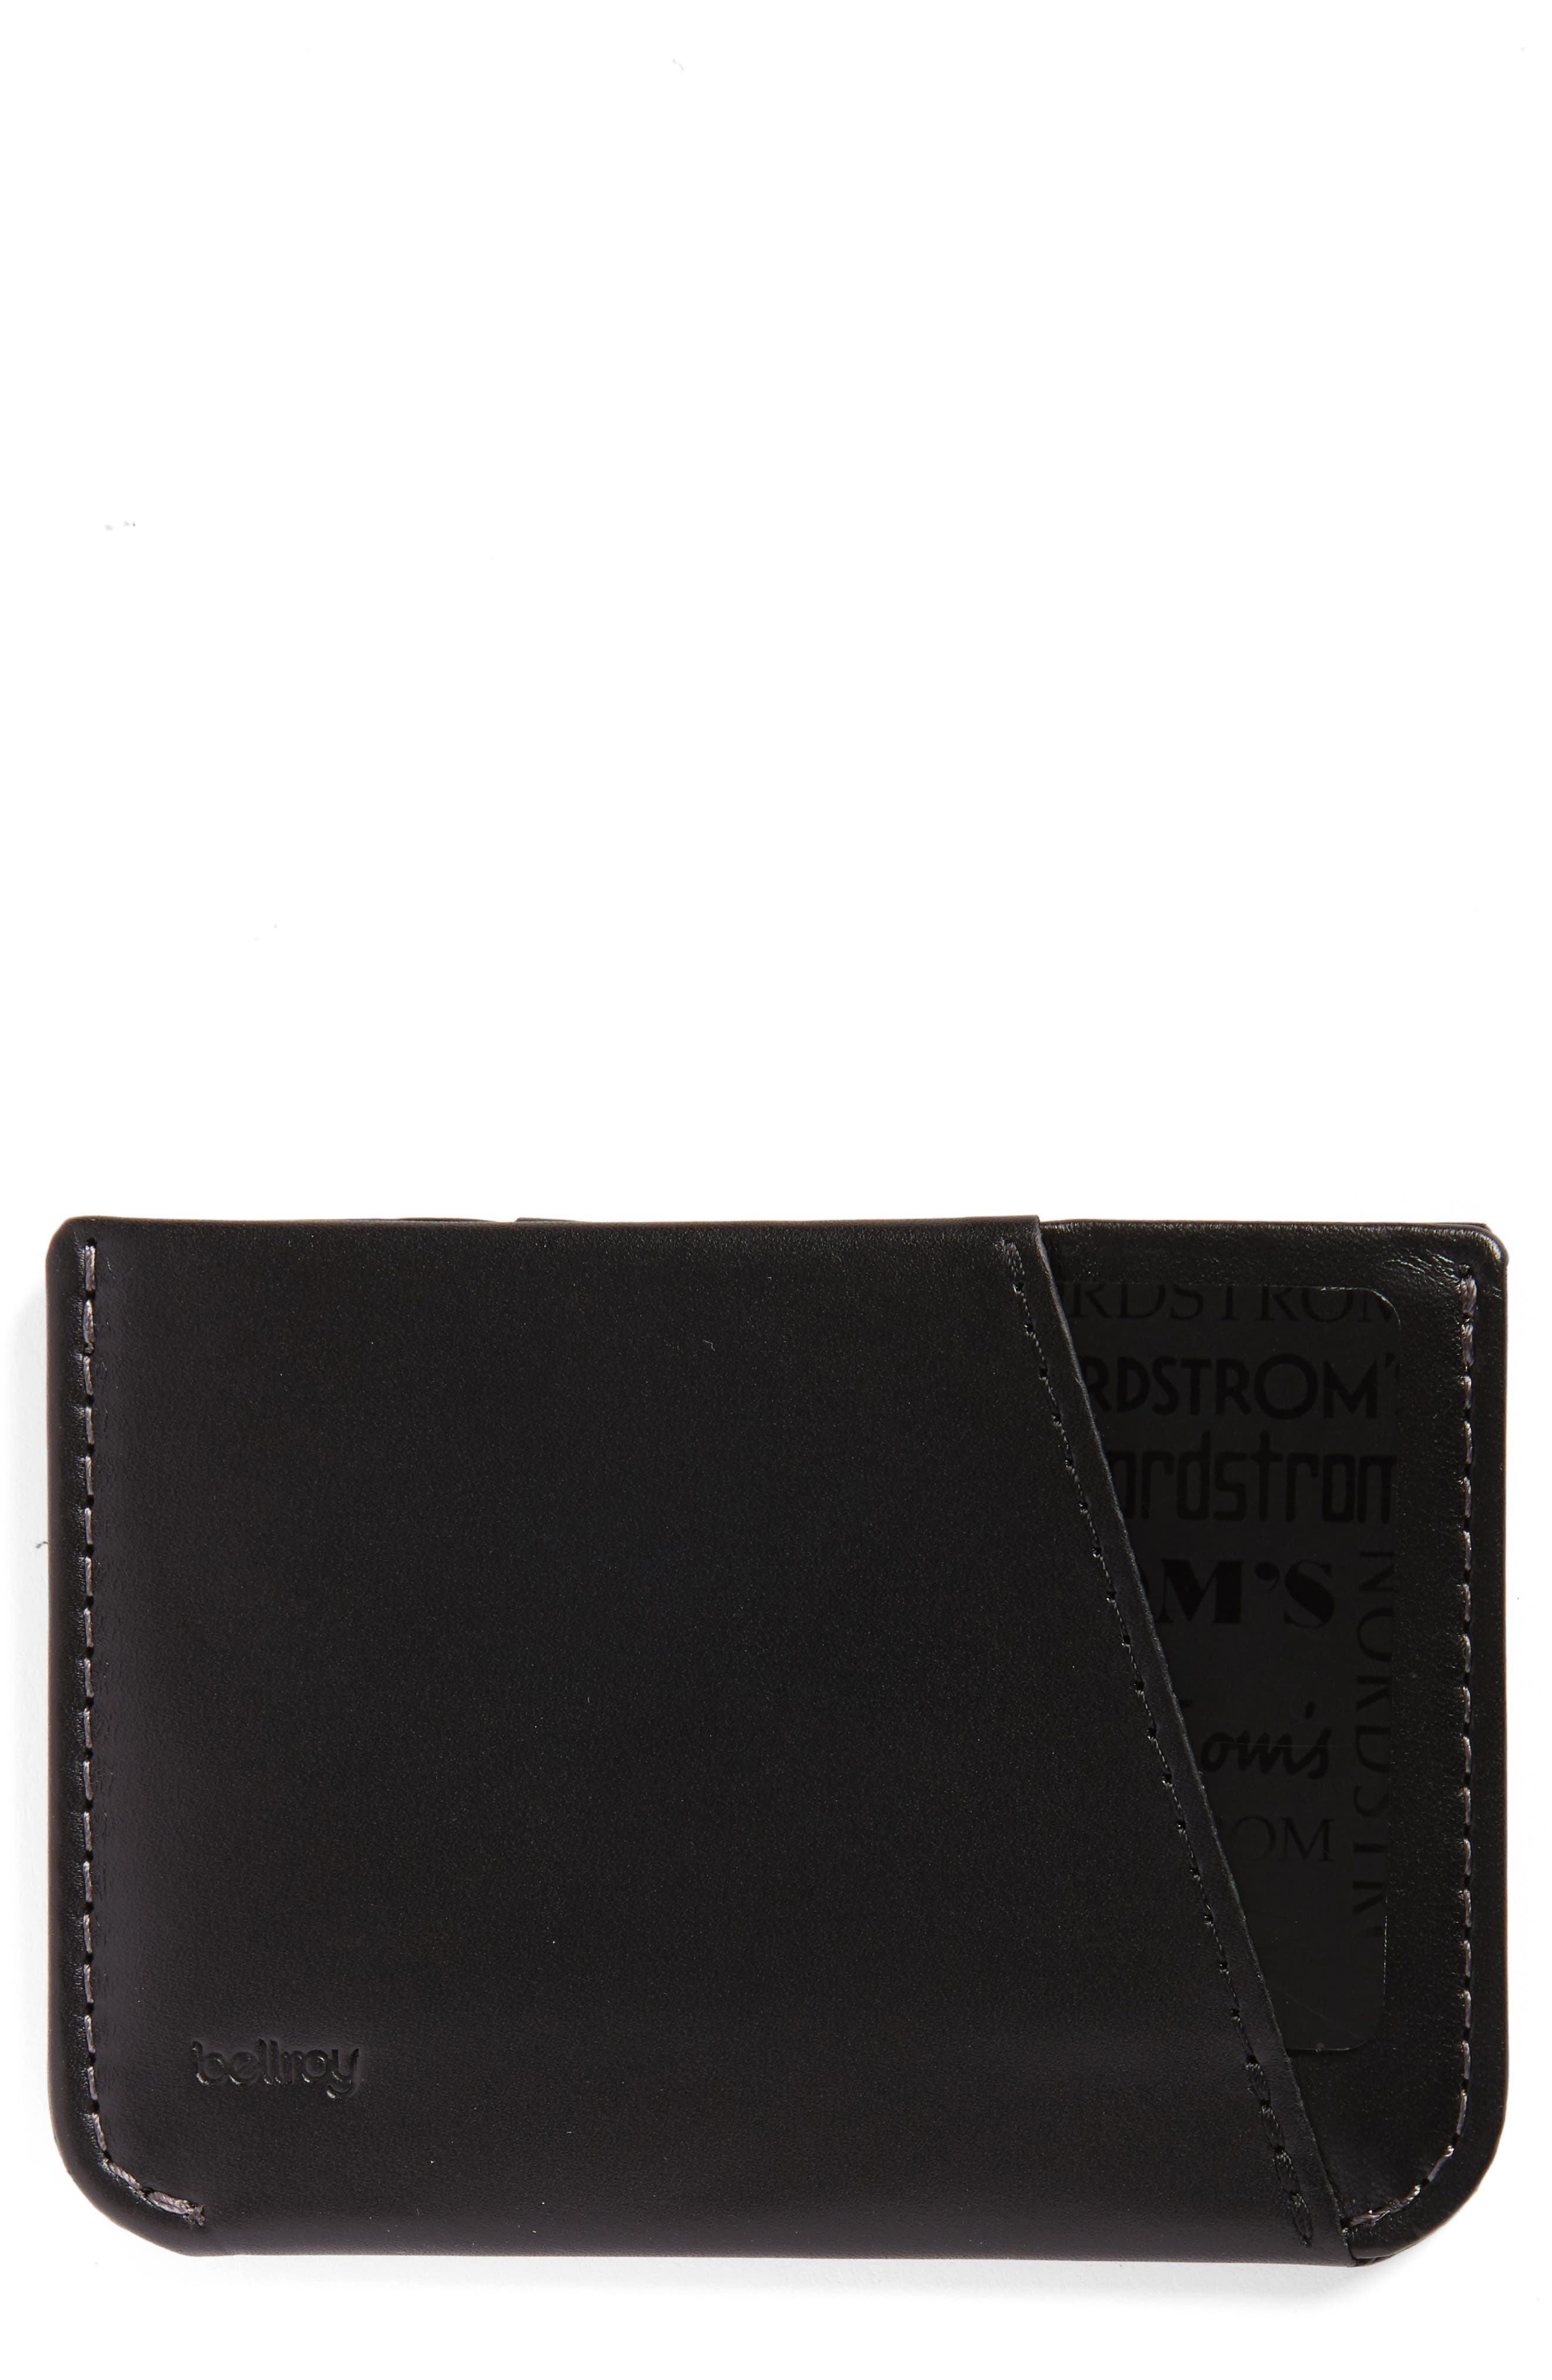 Alternate Image 1 Selected - Bellroy Micro Sleeve Card Case